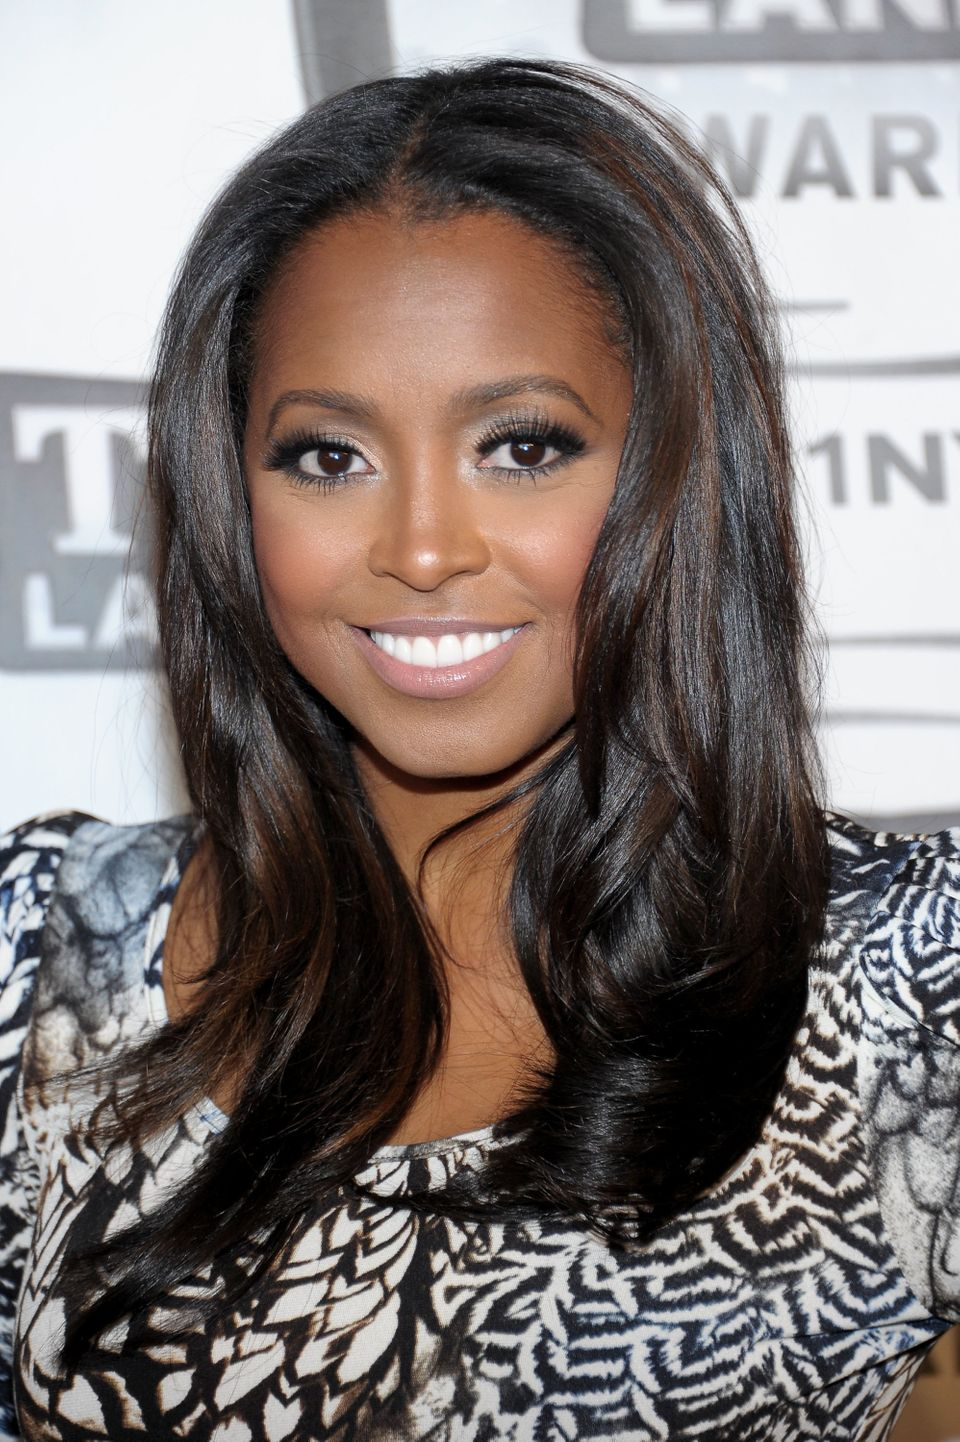 NEW YORK, NY - APRIL 10: Actress Keshia Knight Pulliam attends the 9th Annual TV Land Awards at the Javits Center on April 10